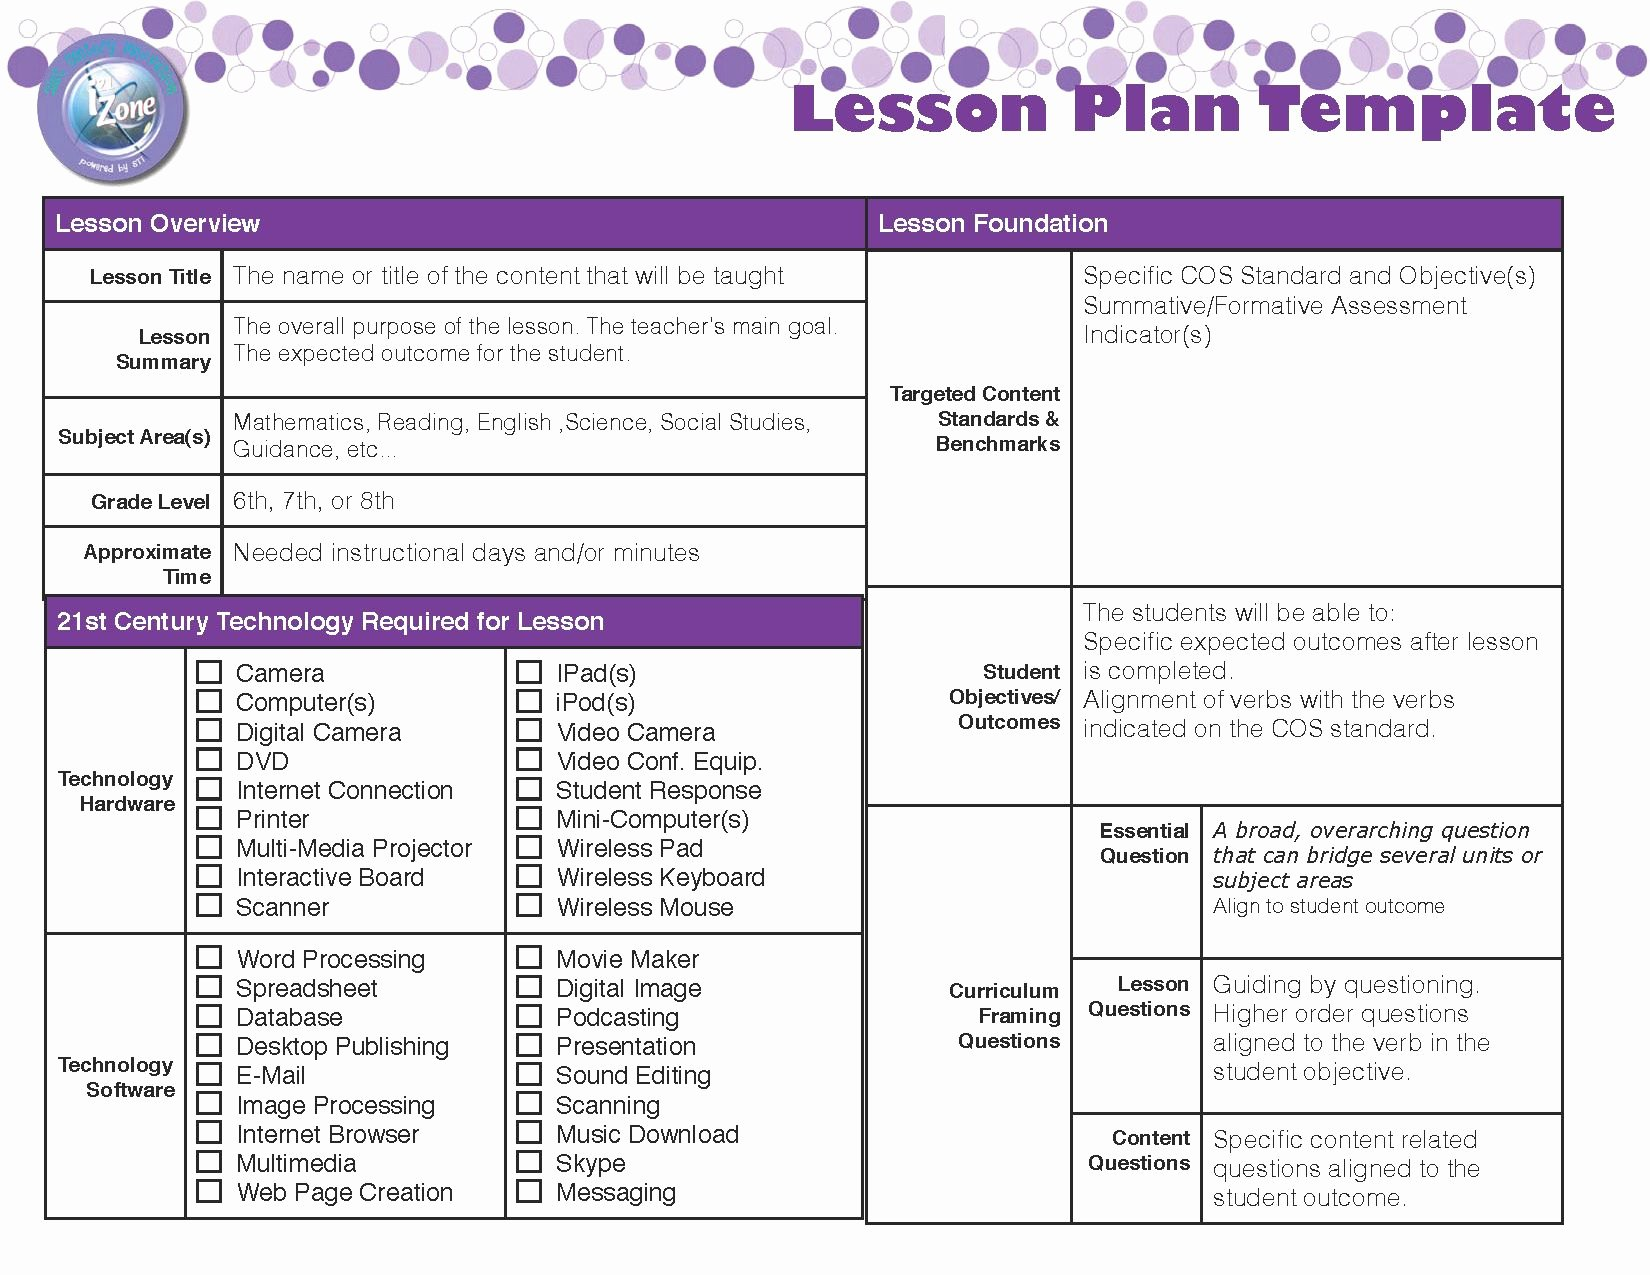 Best Lesson Plan Template Beautiful Lesson Plan Template